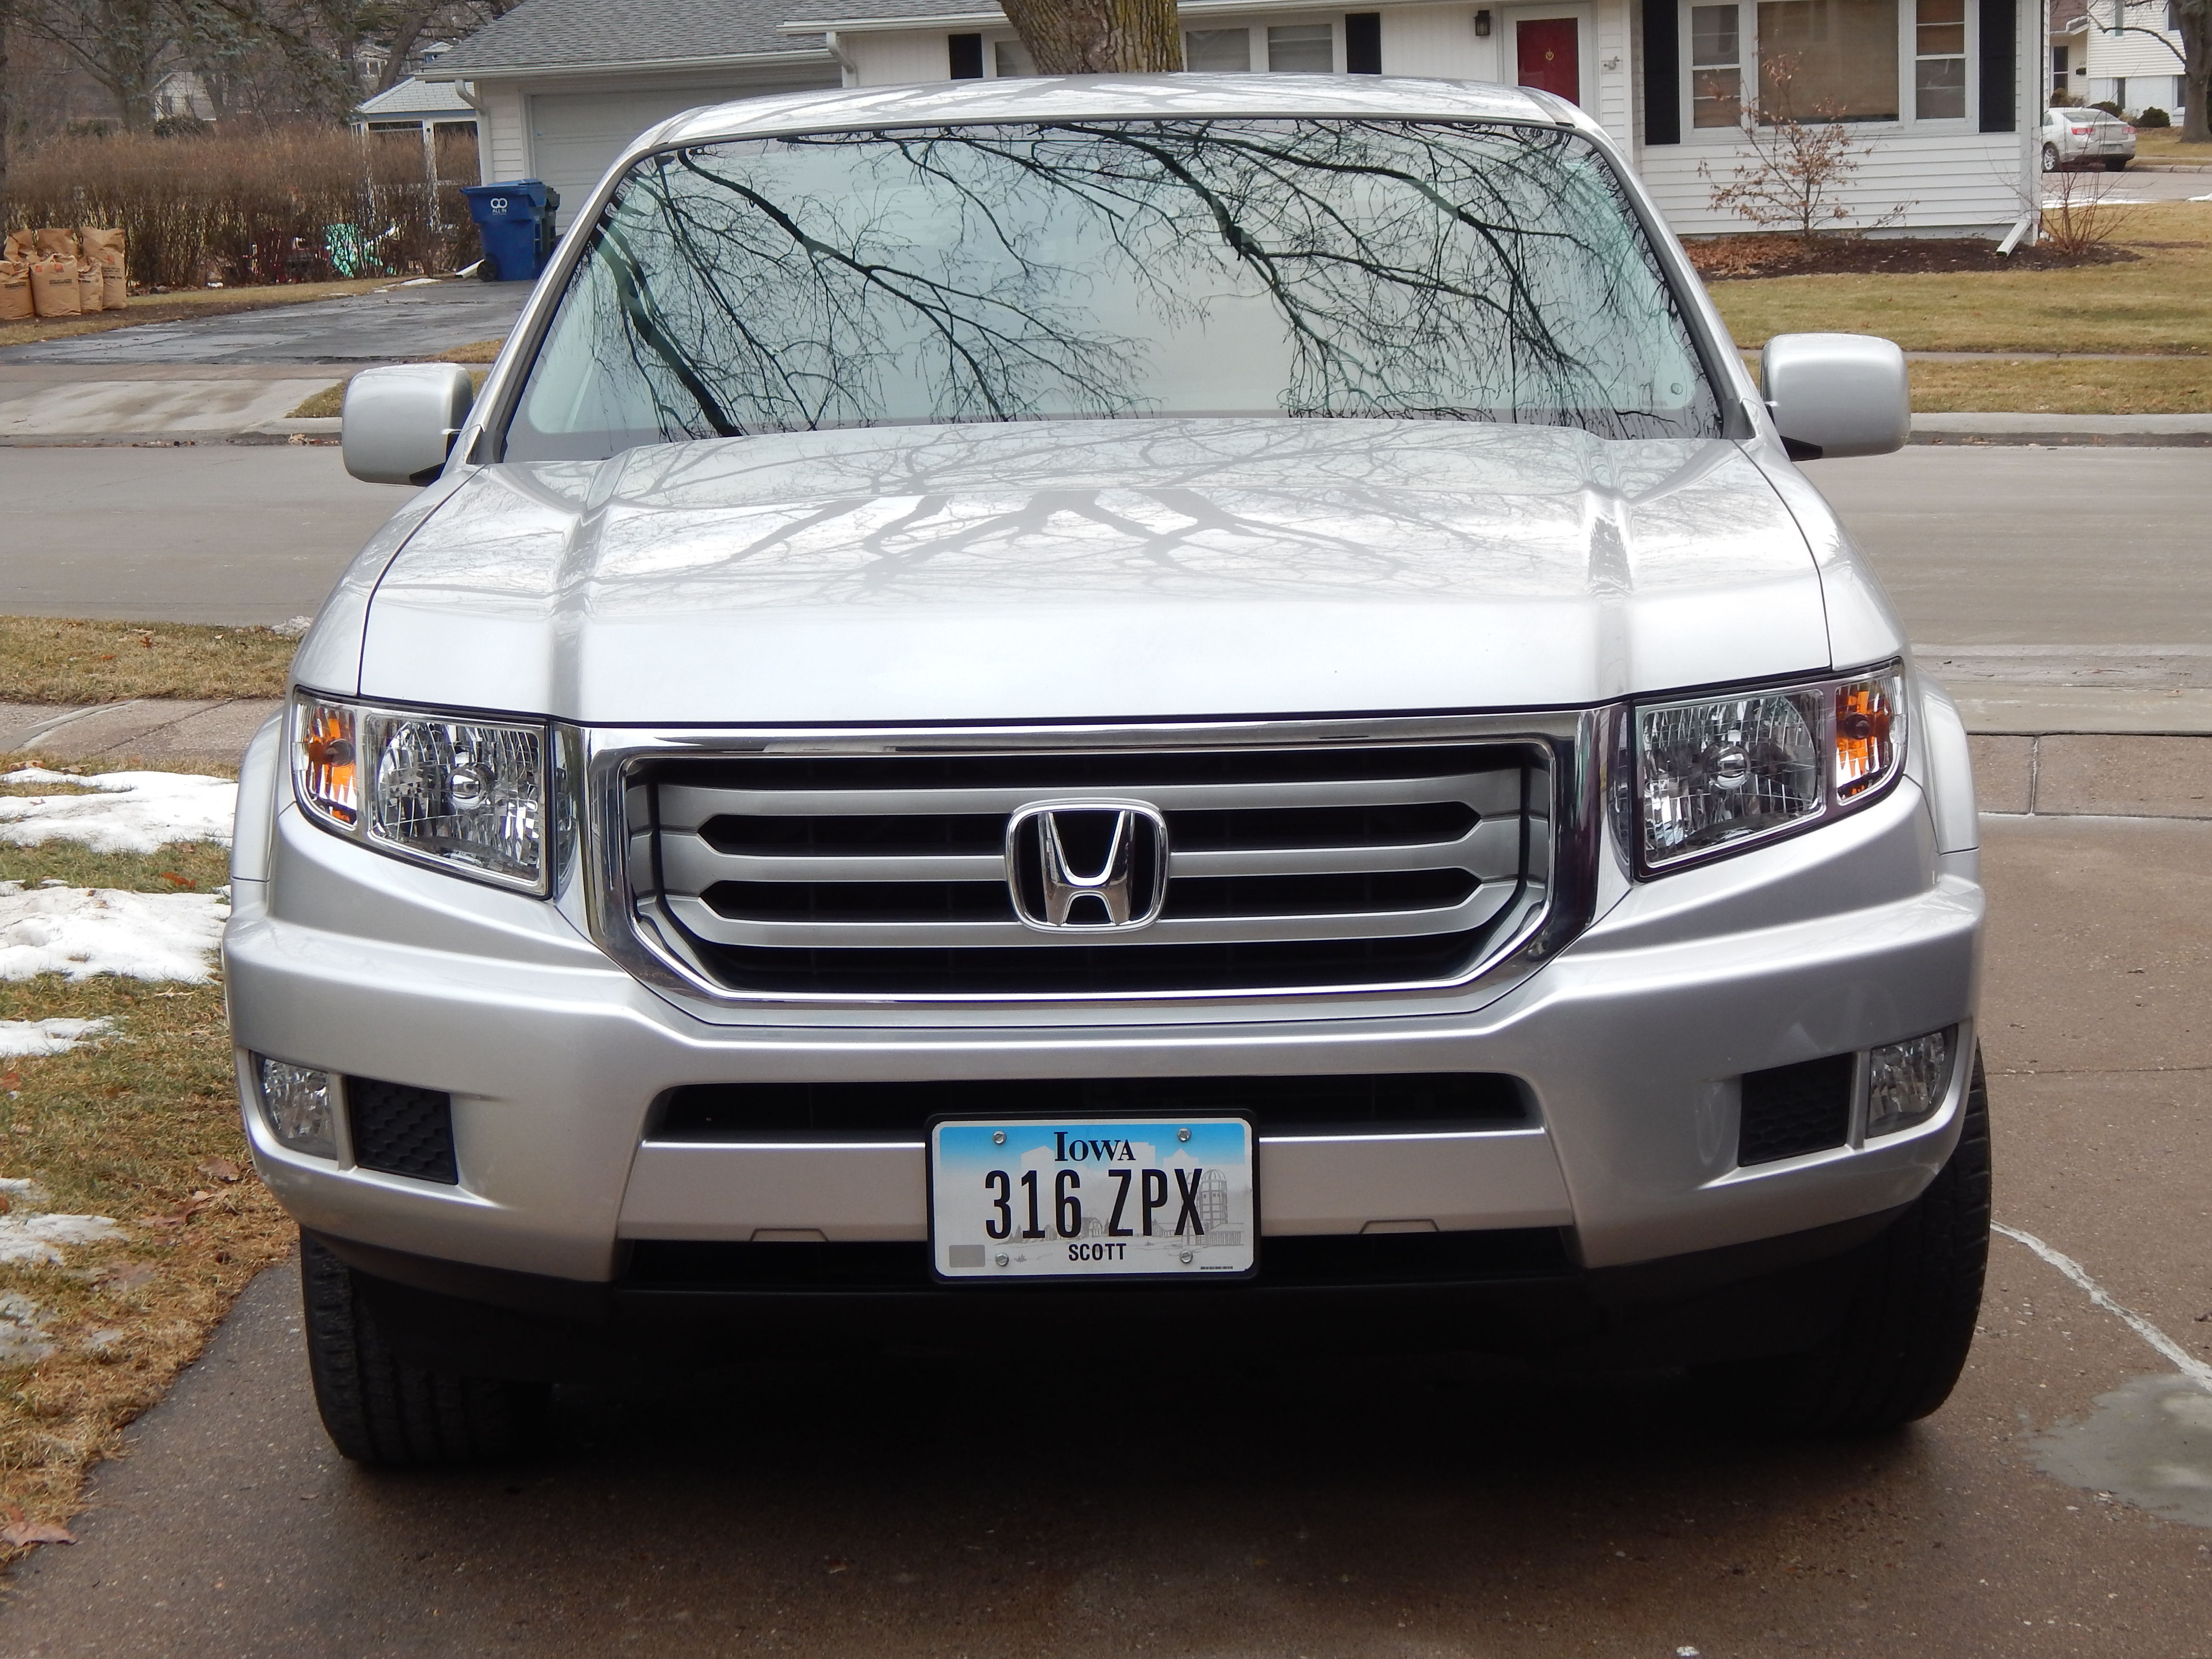 2014 Honda Ridgeline RTS, Silver ext, gray cloth interior image 1